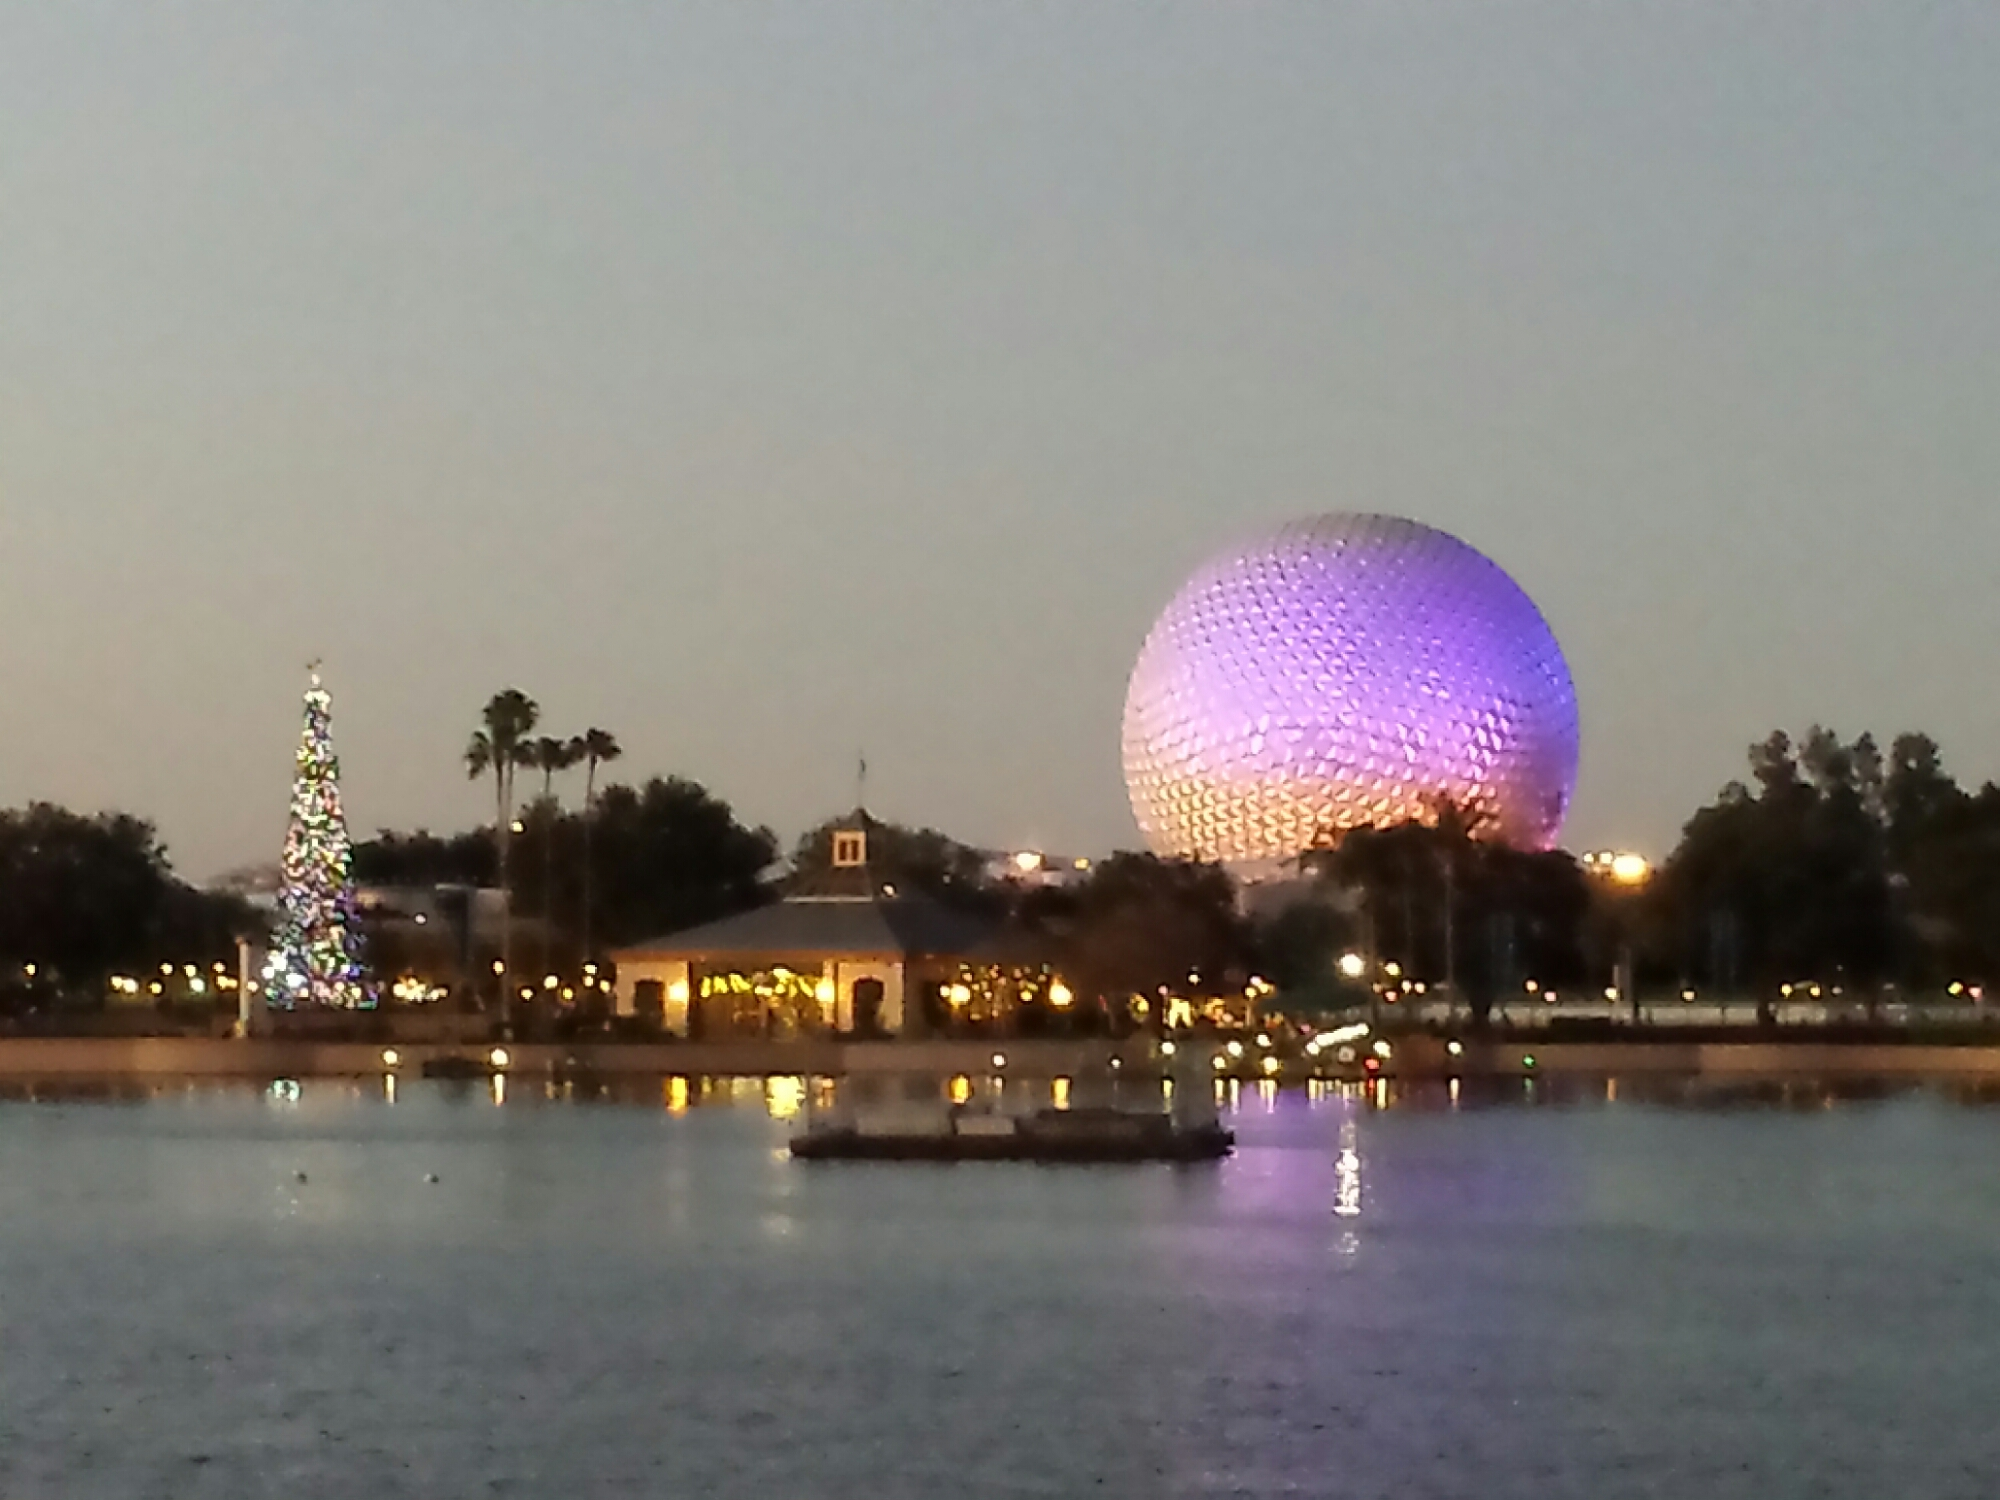 "Overheard while taking this pic ""I didn't know that was Spaceship Earth just thought it was the big Epcot ball"""